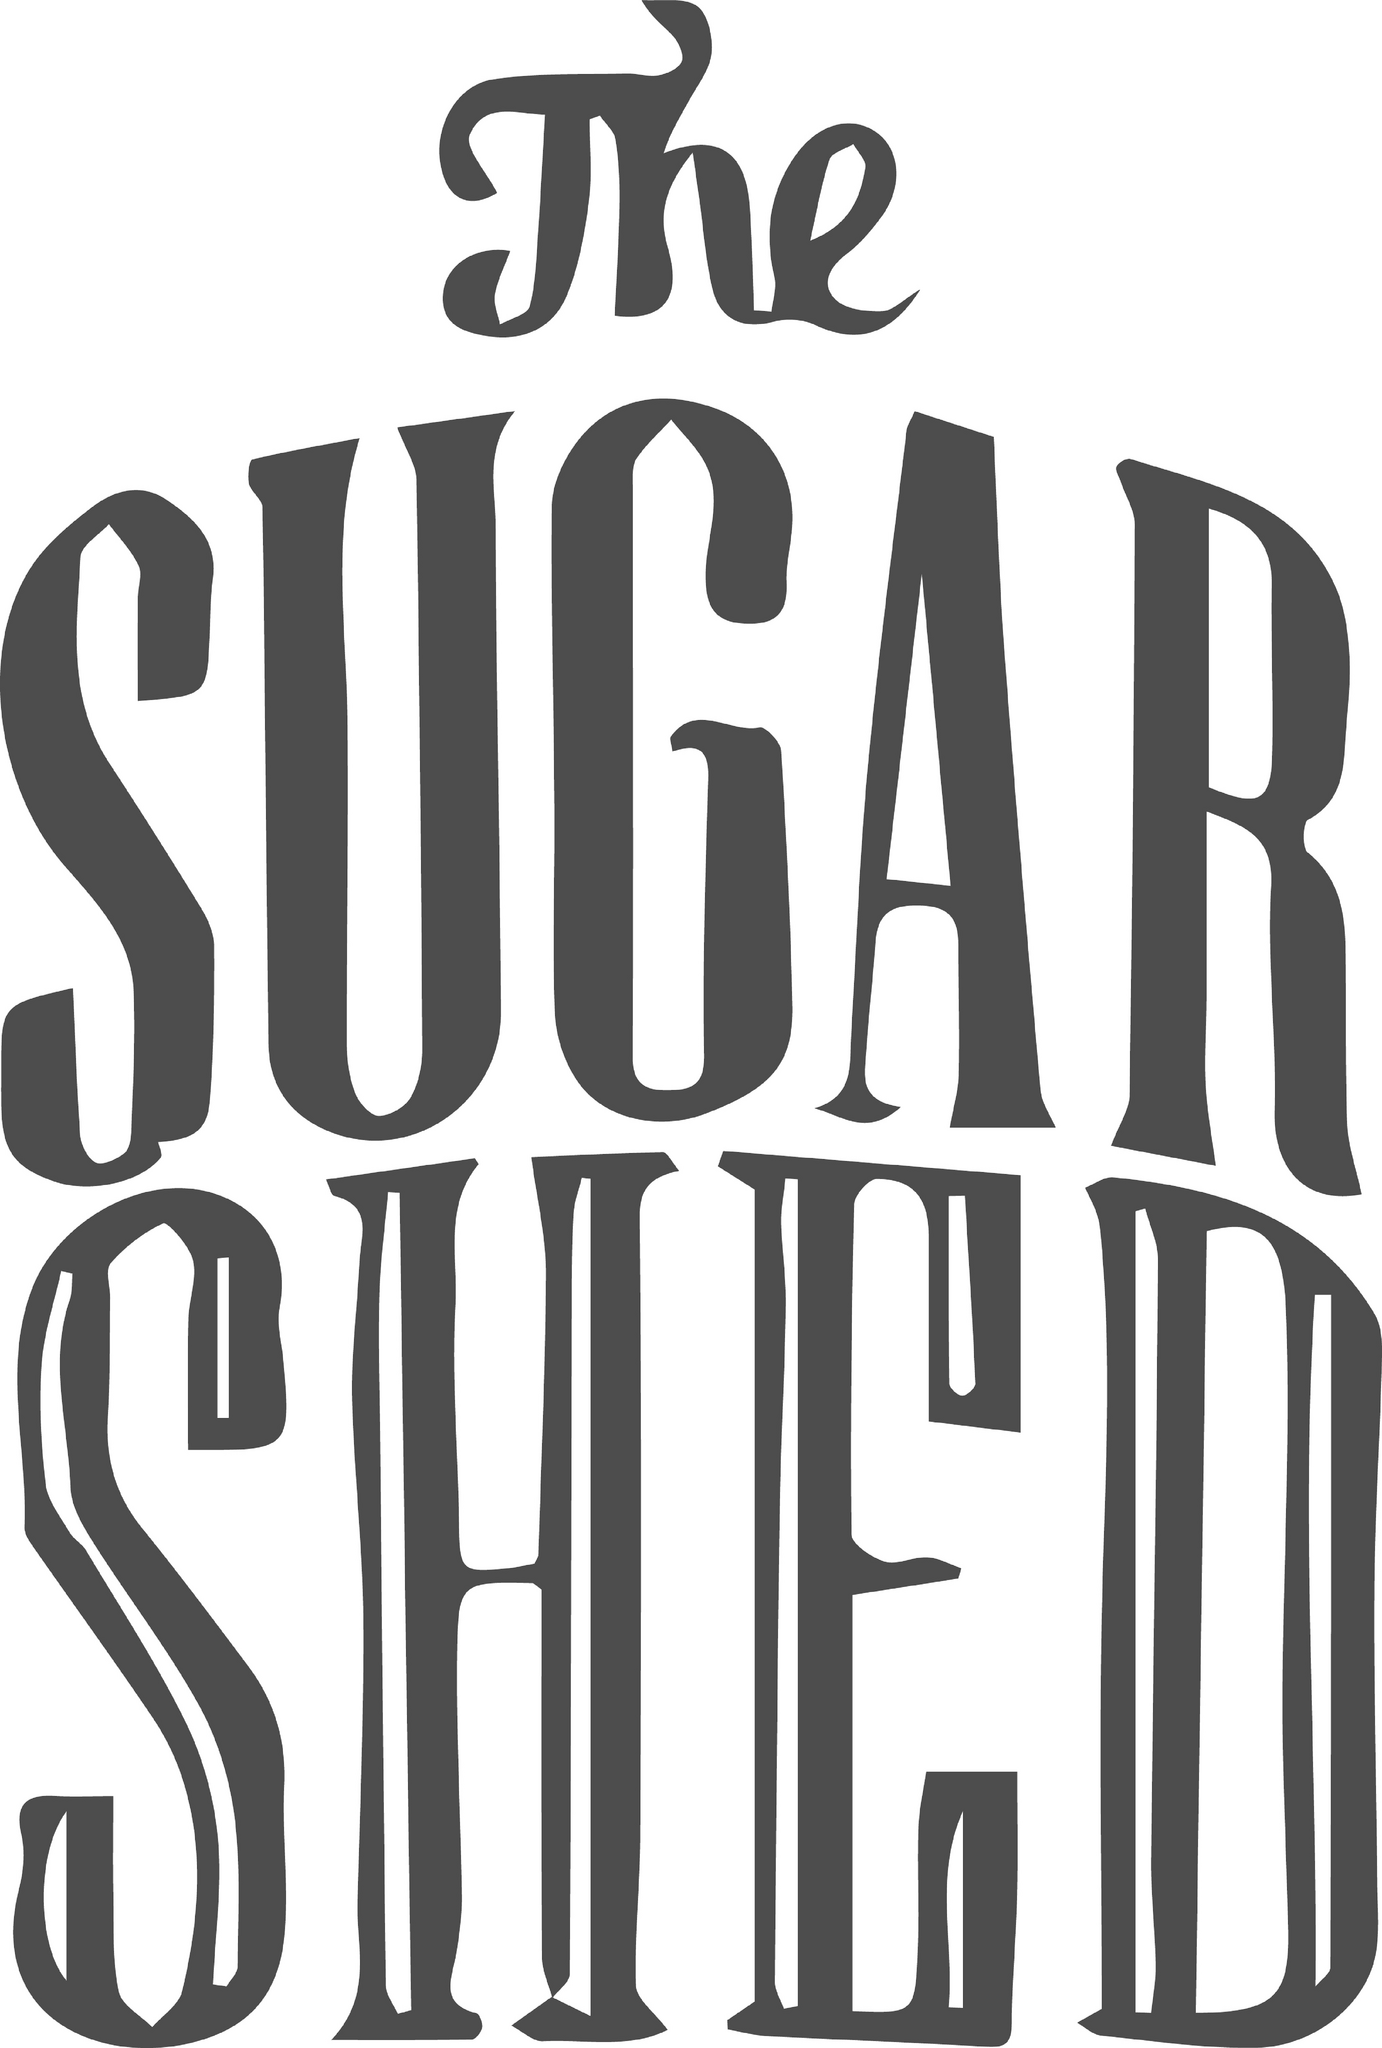 The Sugar Shed Ltd